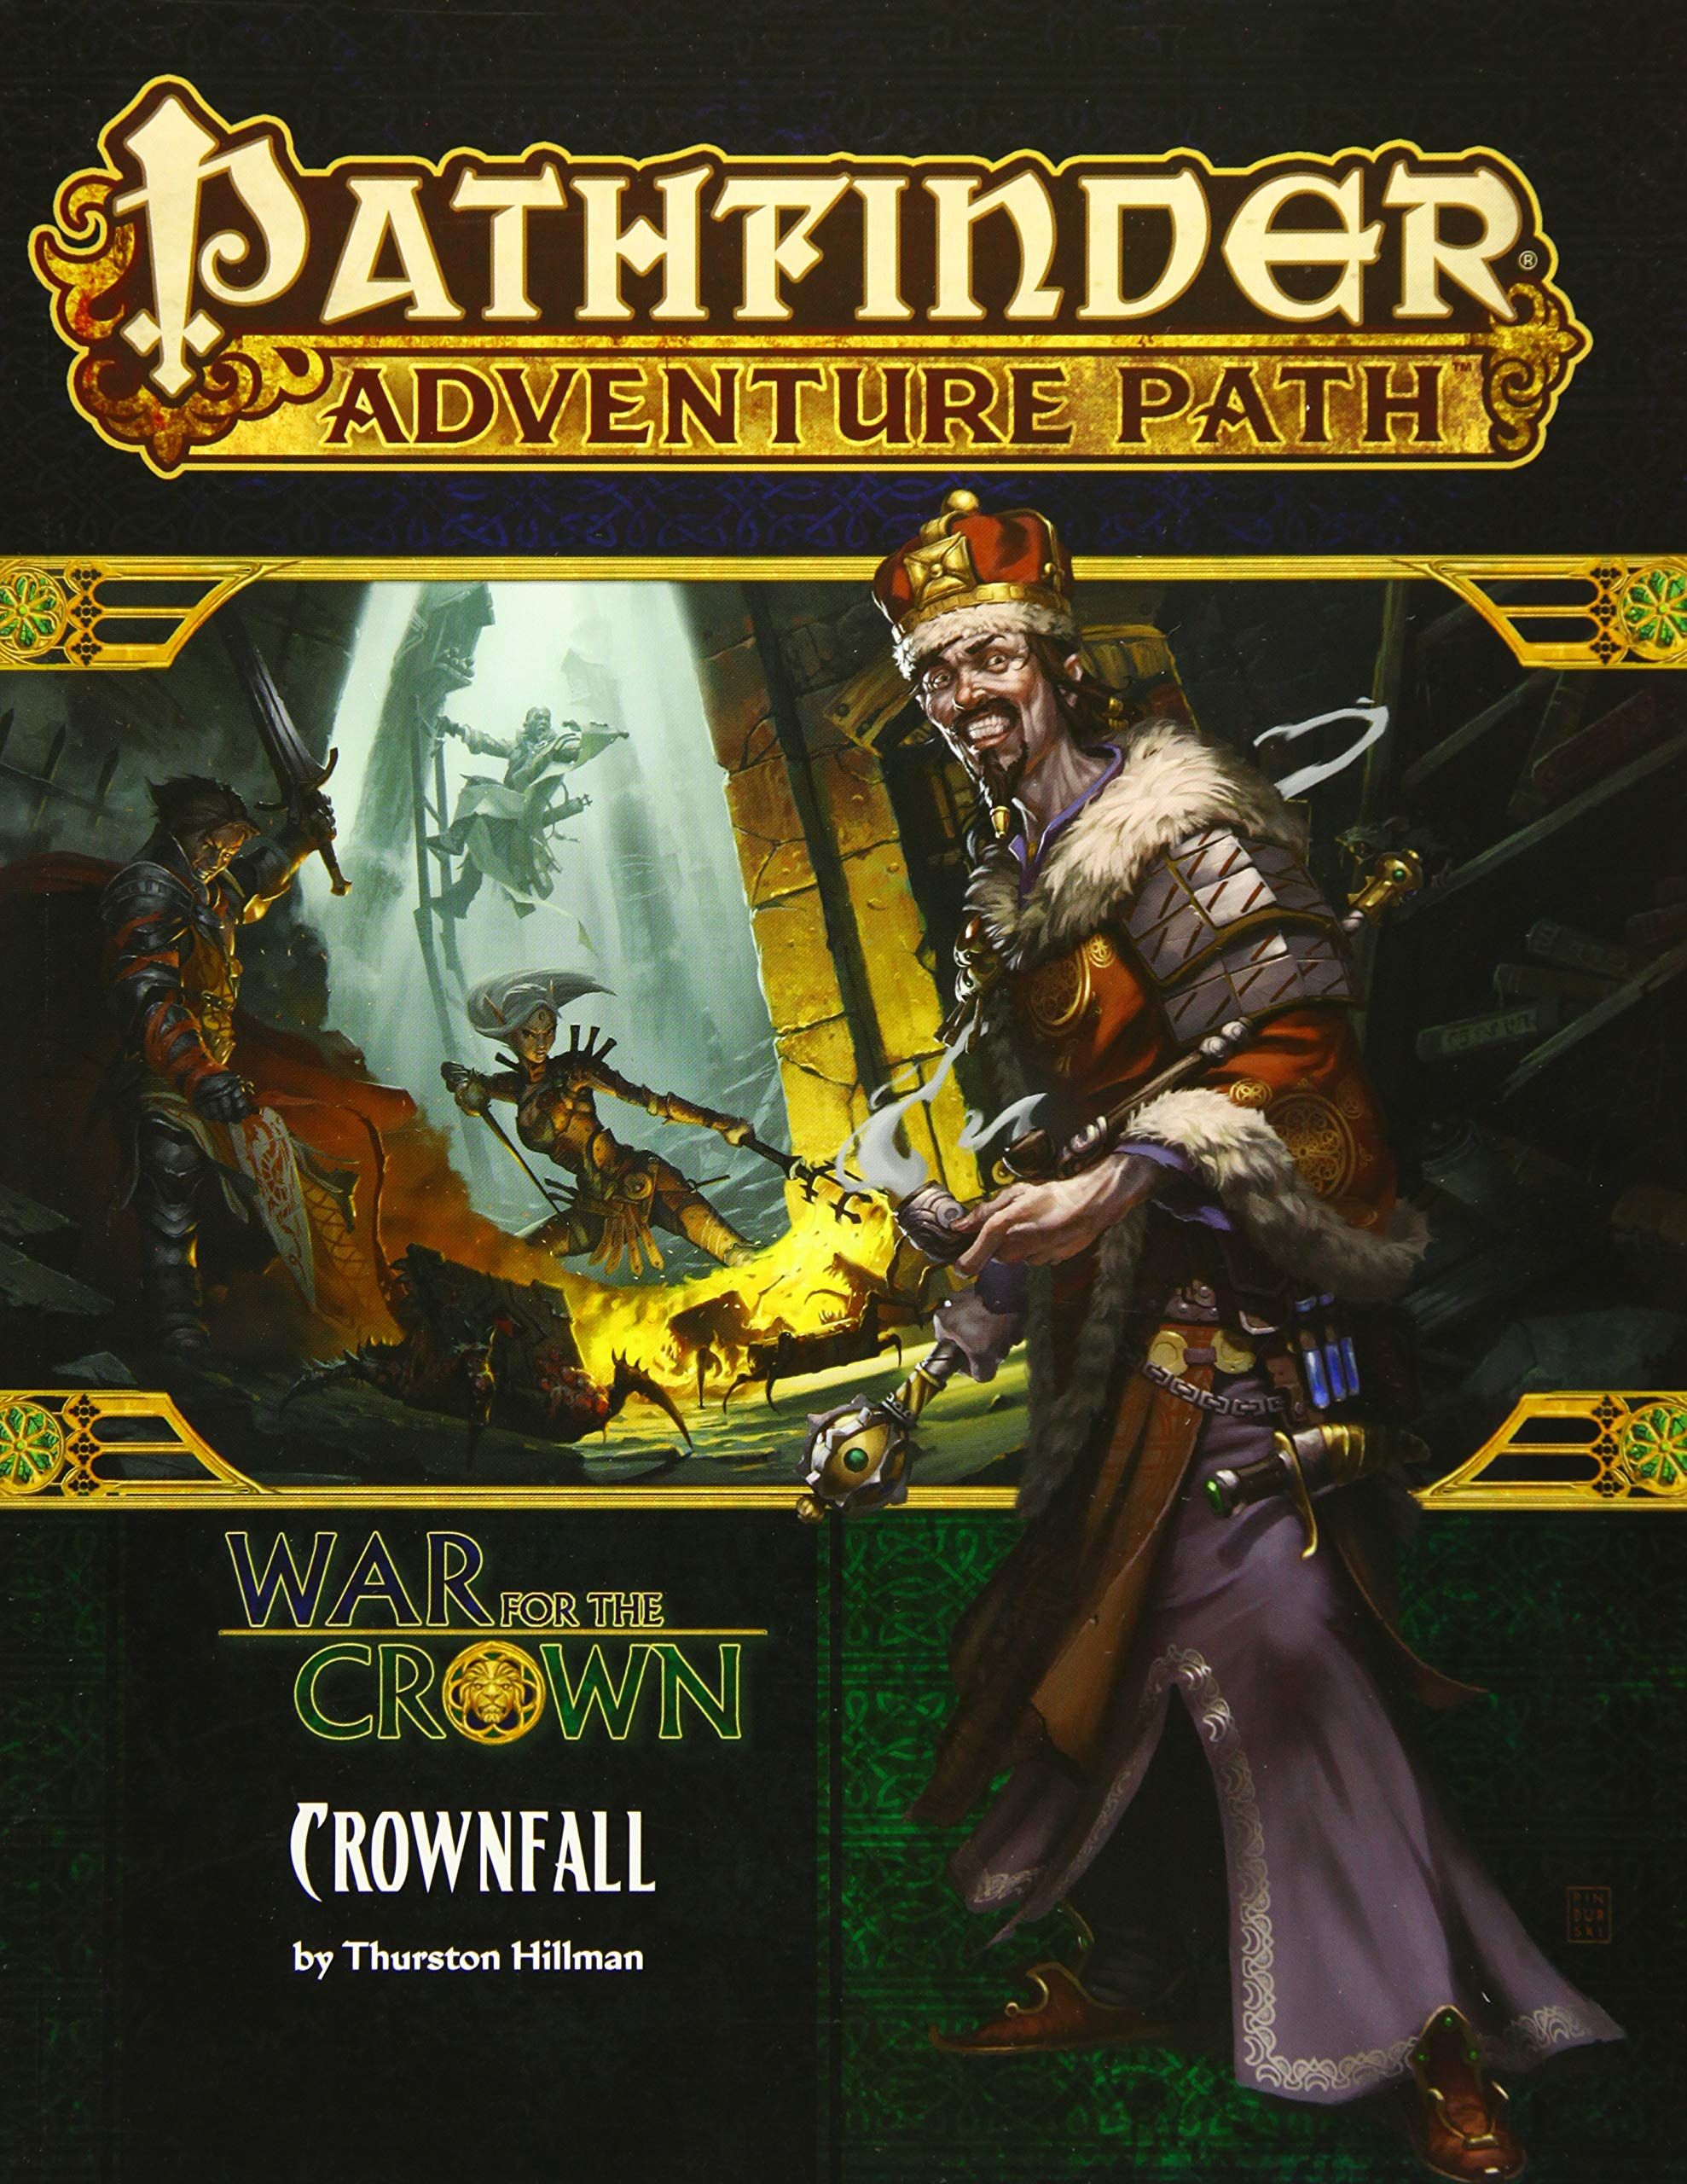 Pathfinder Adventure Path: Crownfall (War for the Crown 1 of